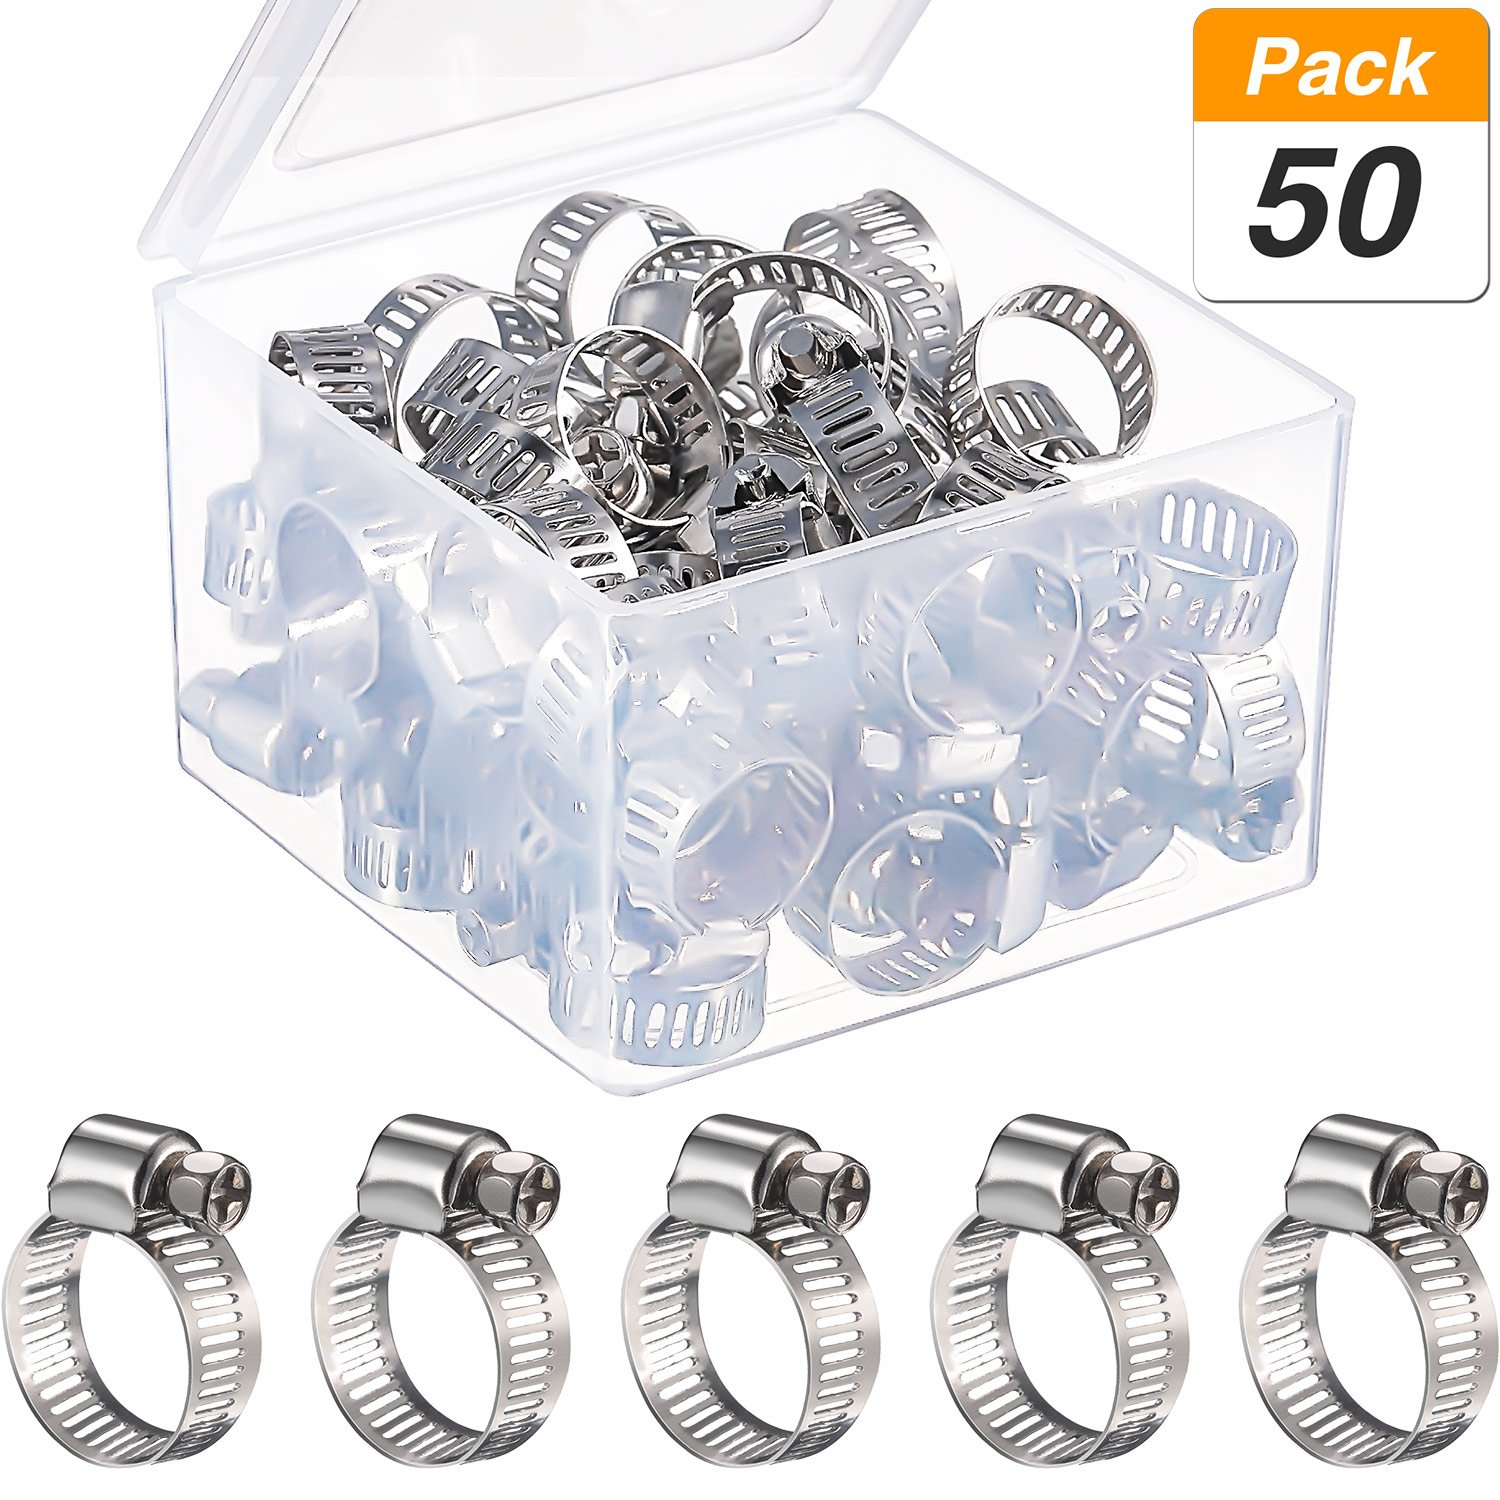 Jovitec 50 Pieces 9-16 mm Adjustable Stainless Steel Worm Drive Pipes Hose Clamps Clips with Storage Box